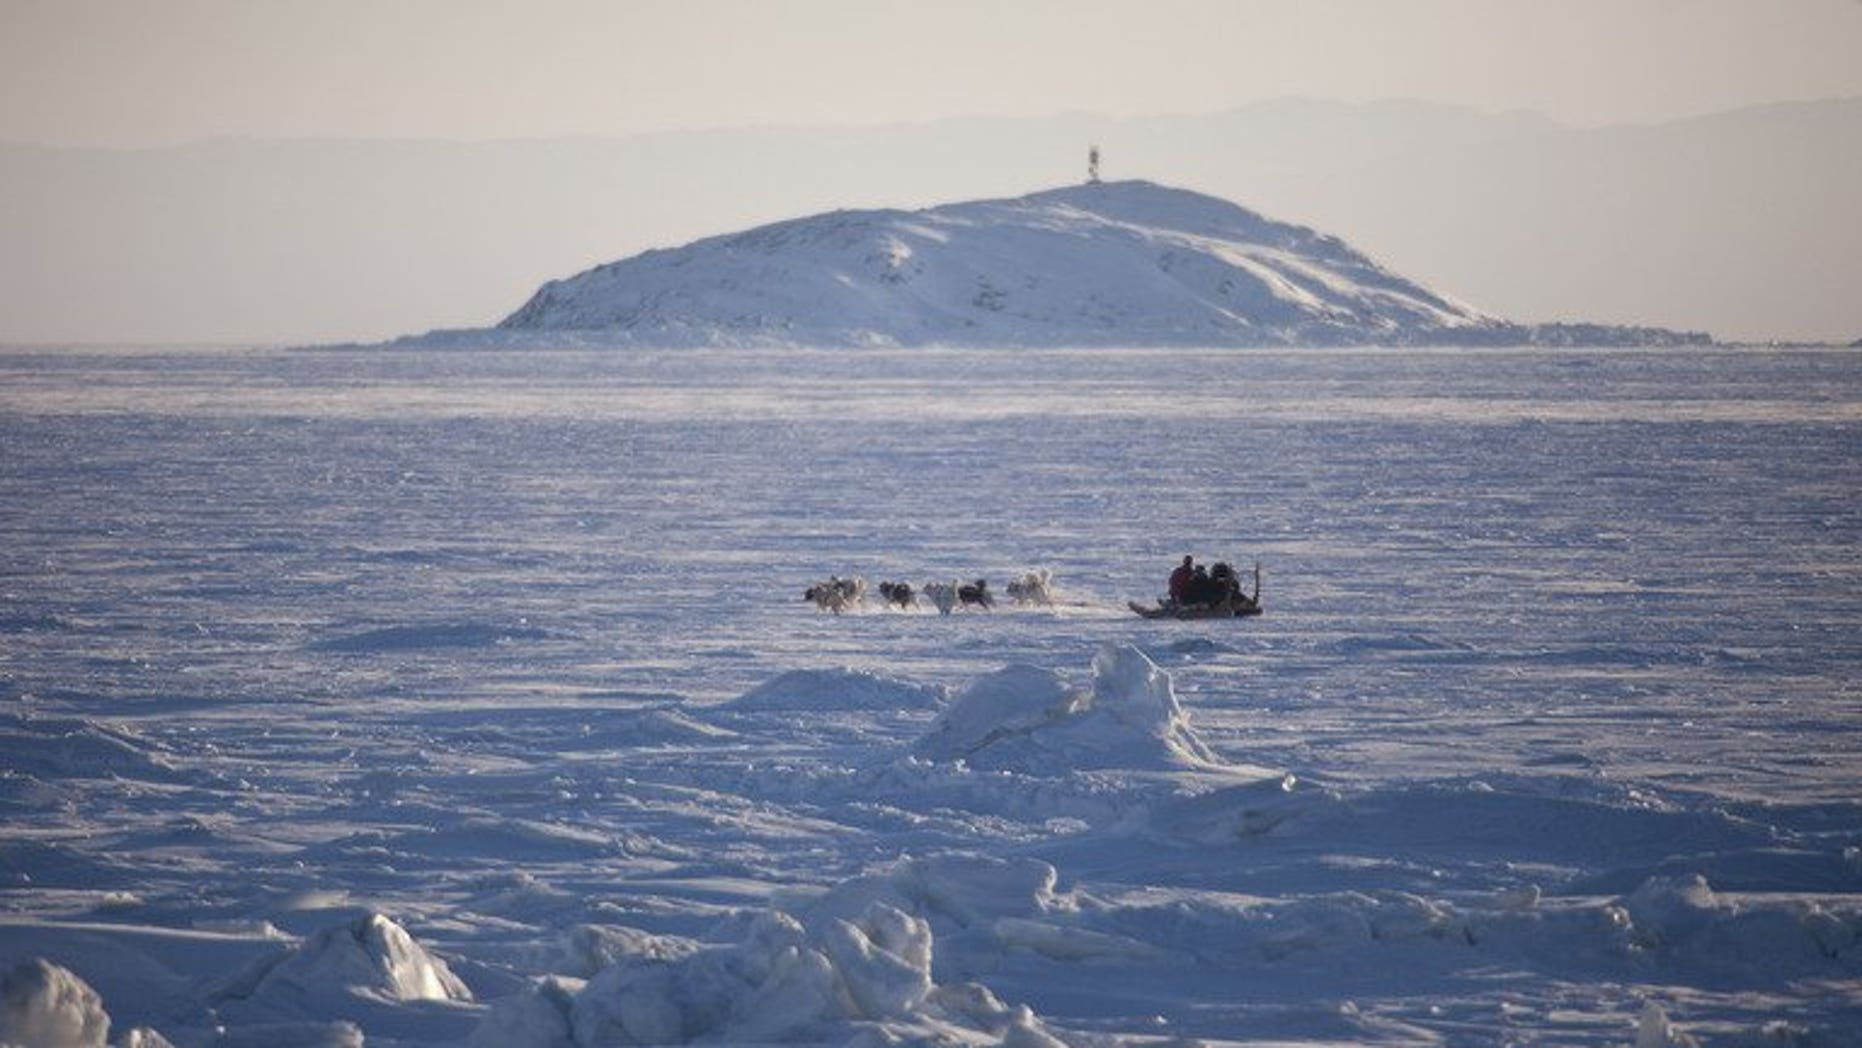 A dogsled crosses a frozen bay in Nunavut, Canada, February 5, 2010. Twenty tourists became stranded on an Arctic ice floe when the ice they were walking on broke away from land in the remote province.